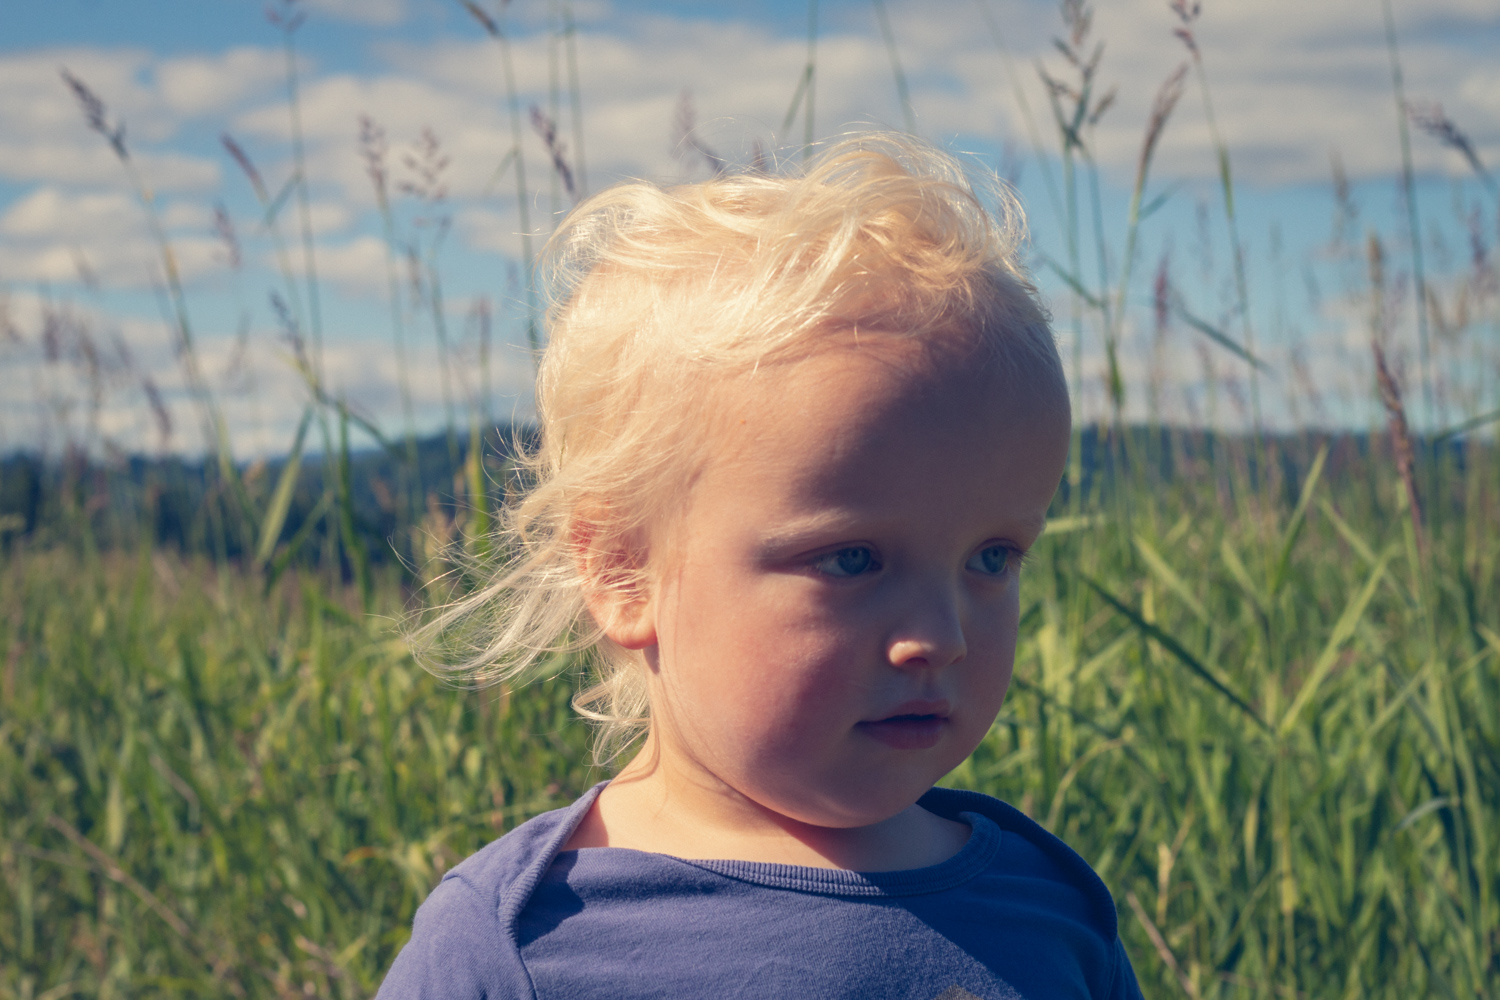 Toddler-age boy standing in the wilderness 06/19